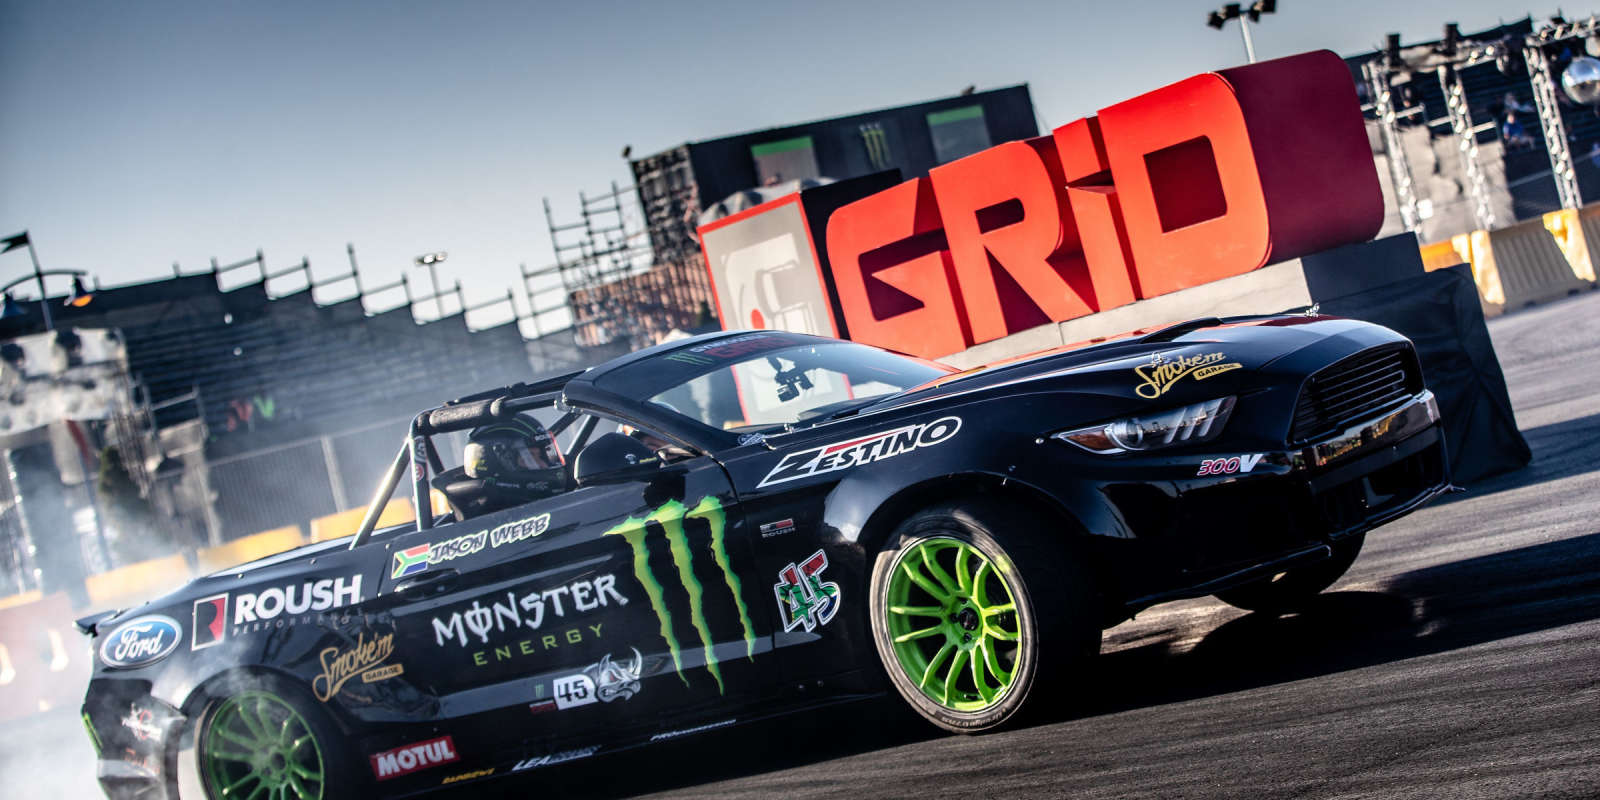 Practice shots from Gymkhana Grid 2018 in Johannesburg, South Africa